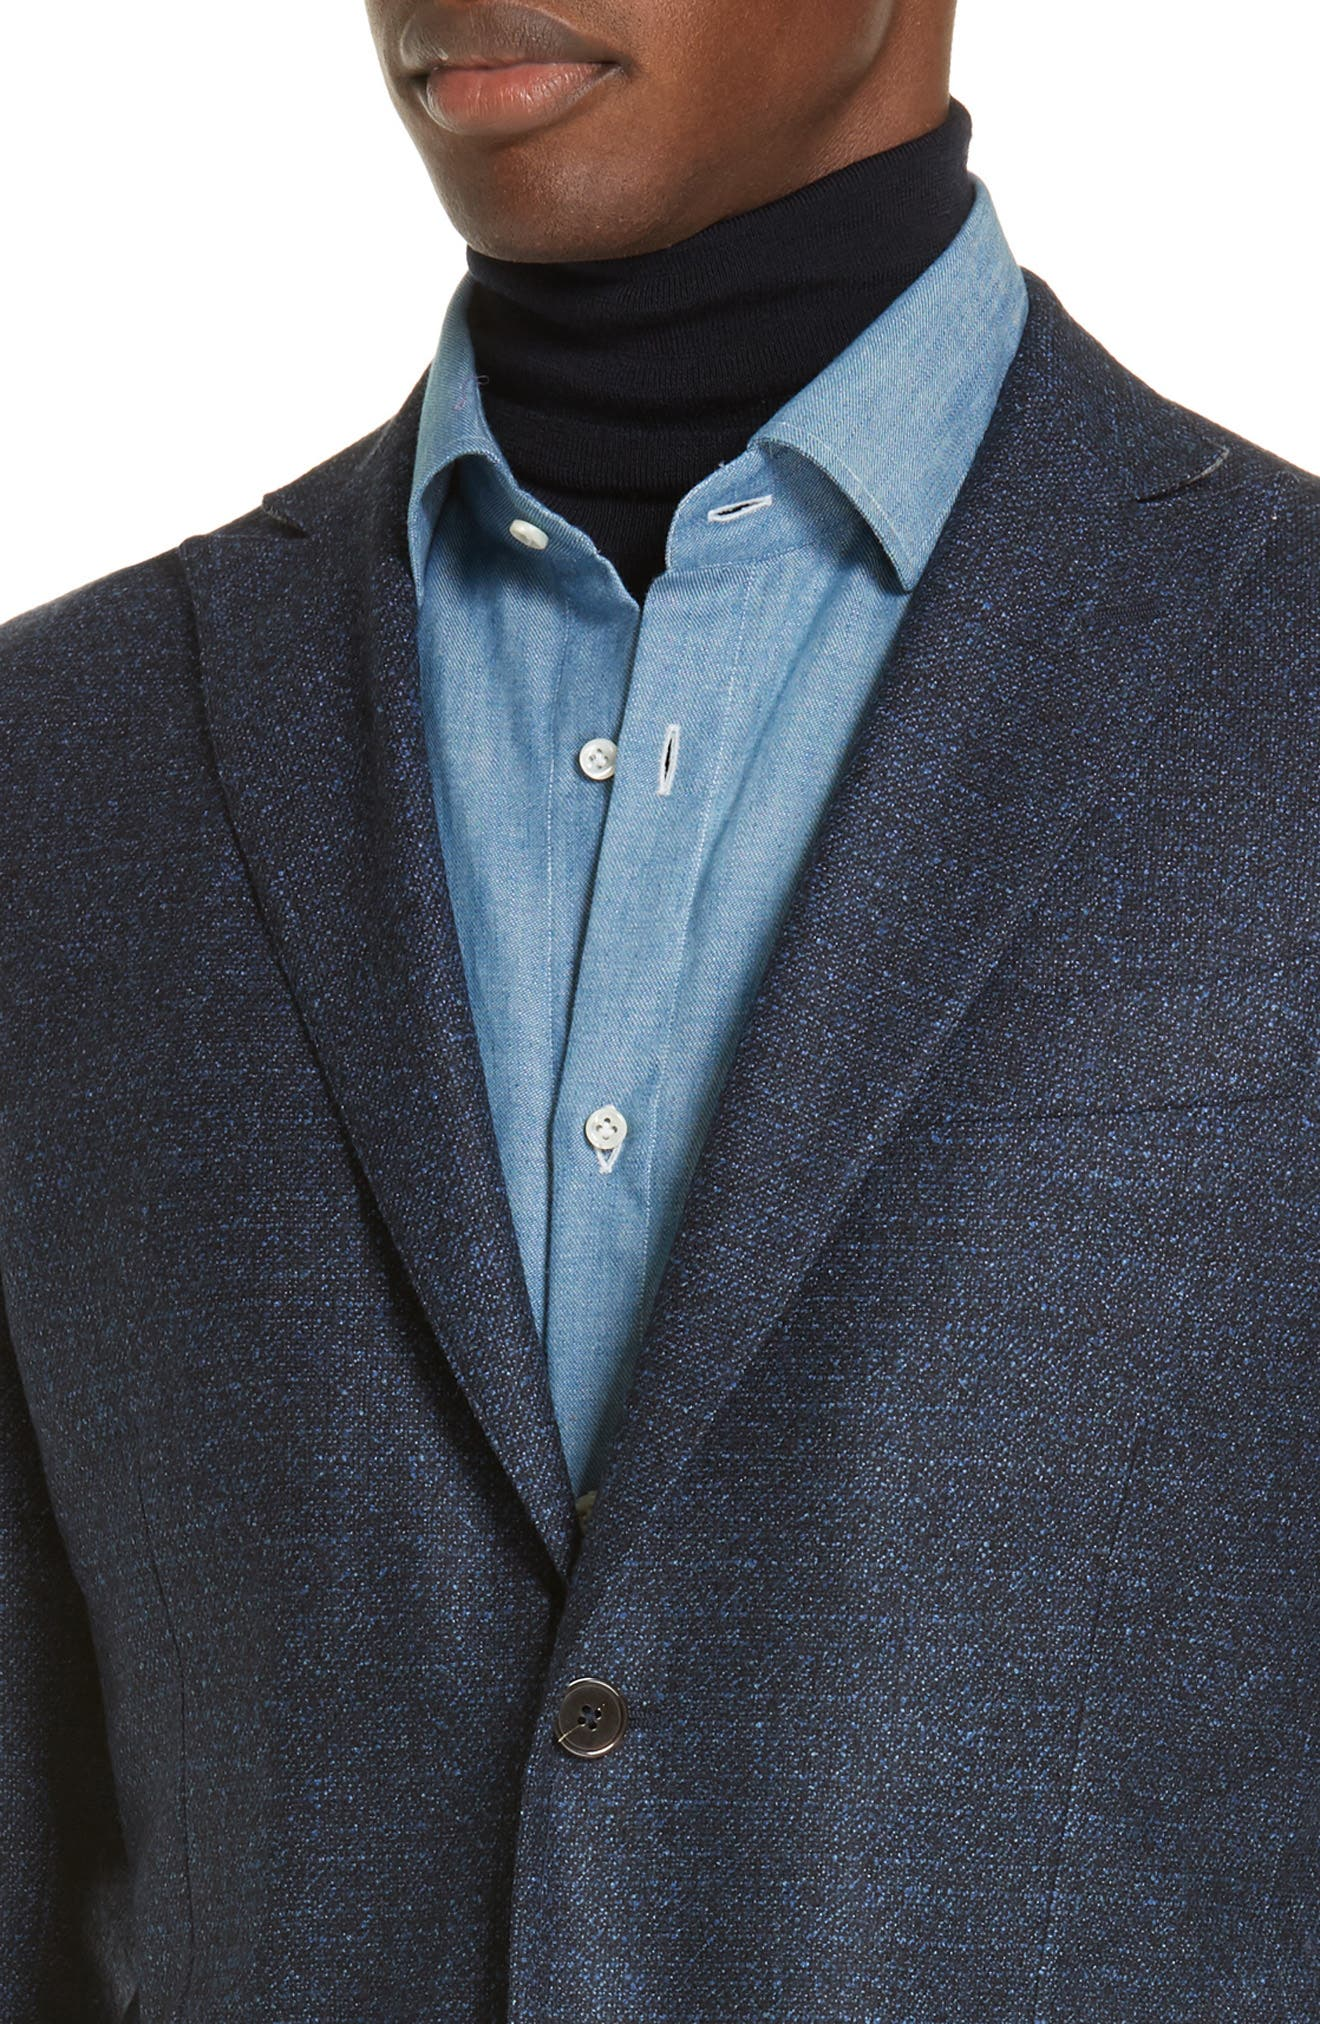 Trim Fit Tweed Wool Sport Coat,                             Alternate thumbnail 4, color,                             NAVY